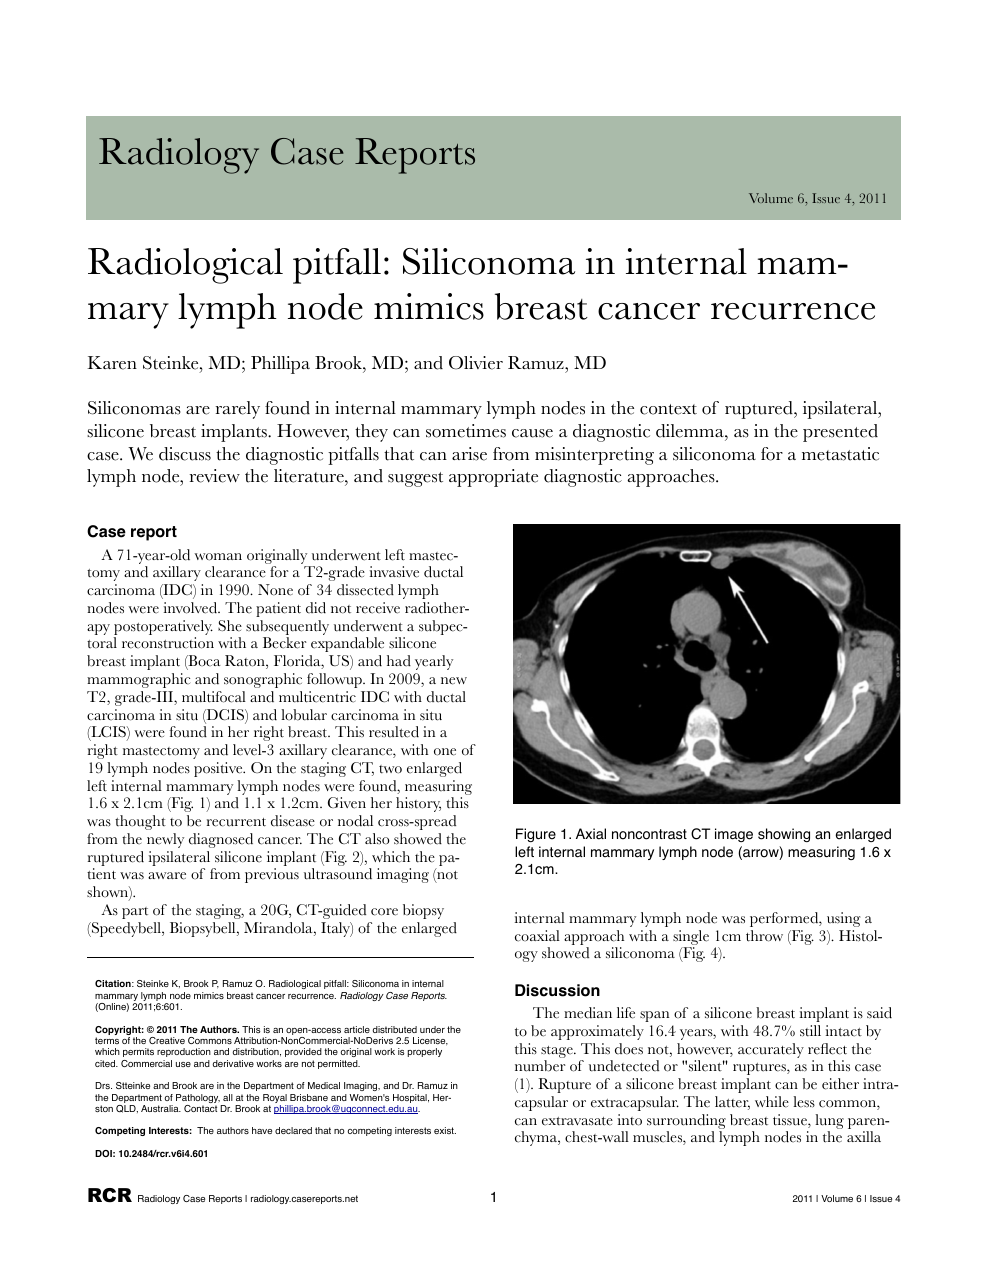 Radiological pitfall: Siliconoma in internal mammary lymph node